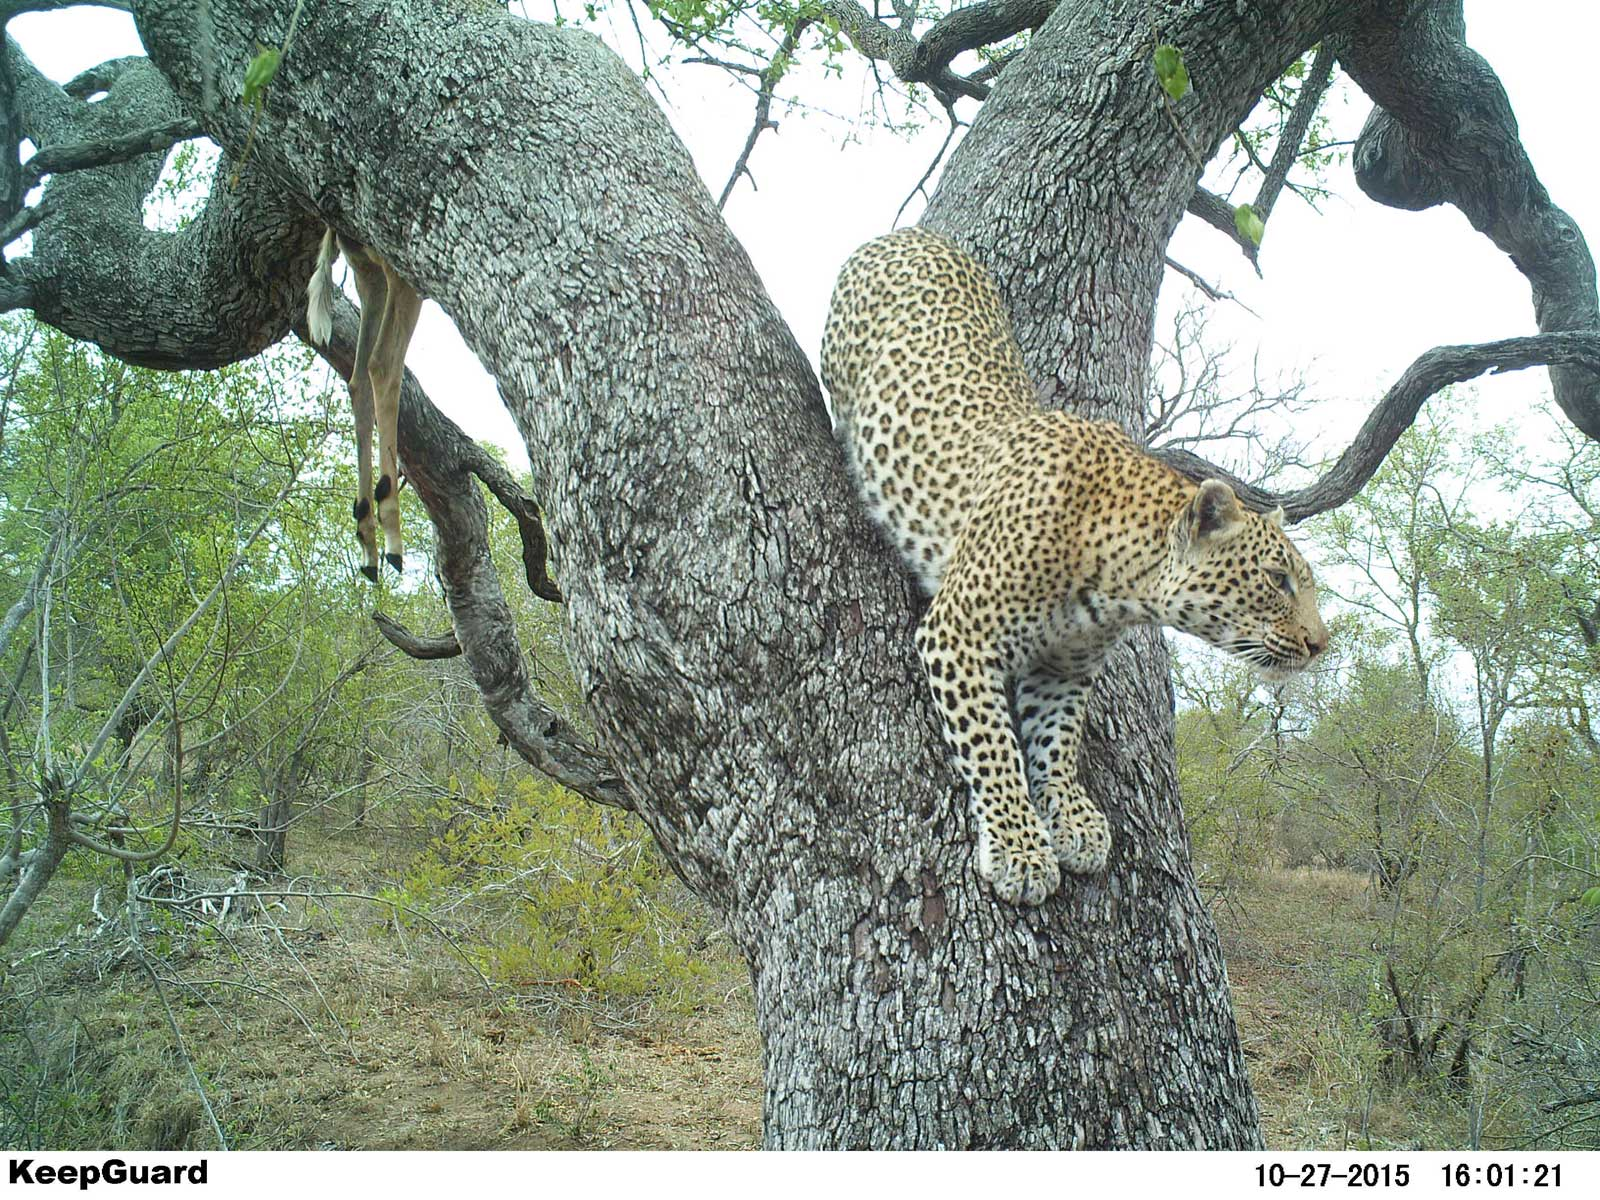 Hidden camera reveals leopard and lion in tree!